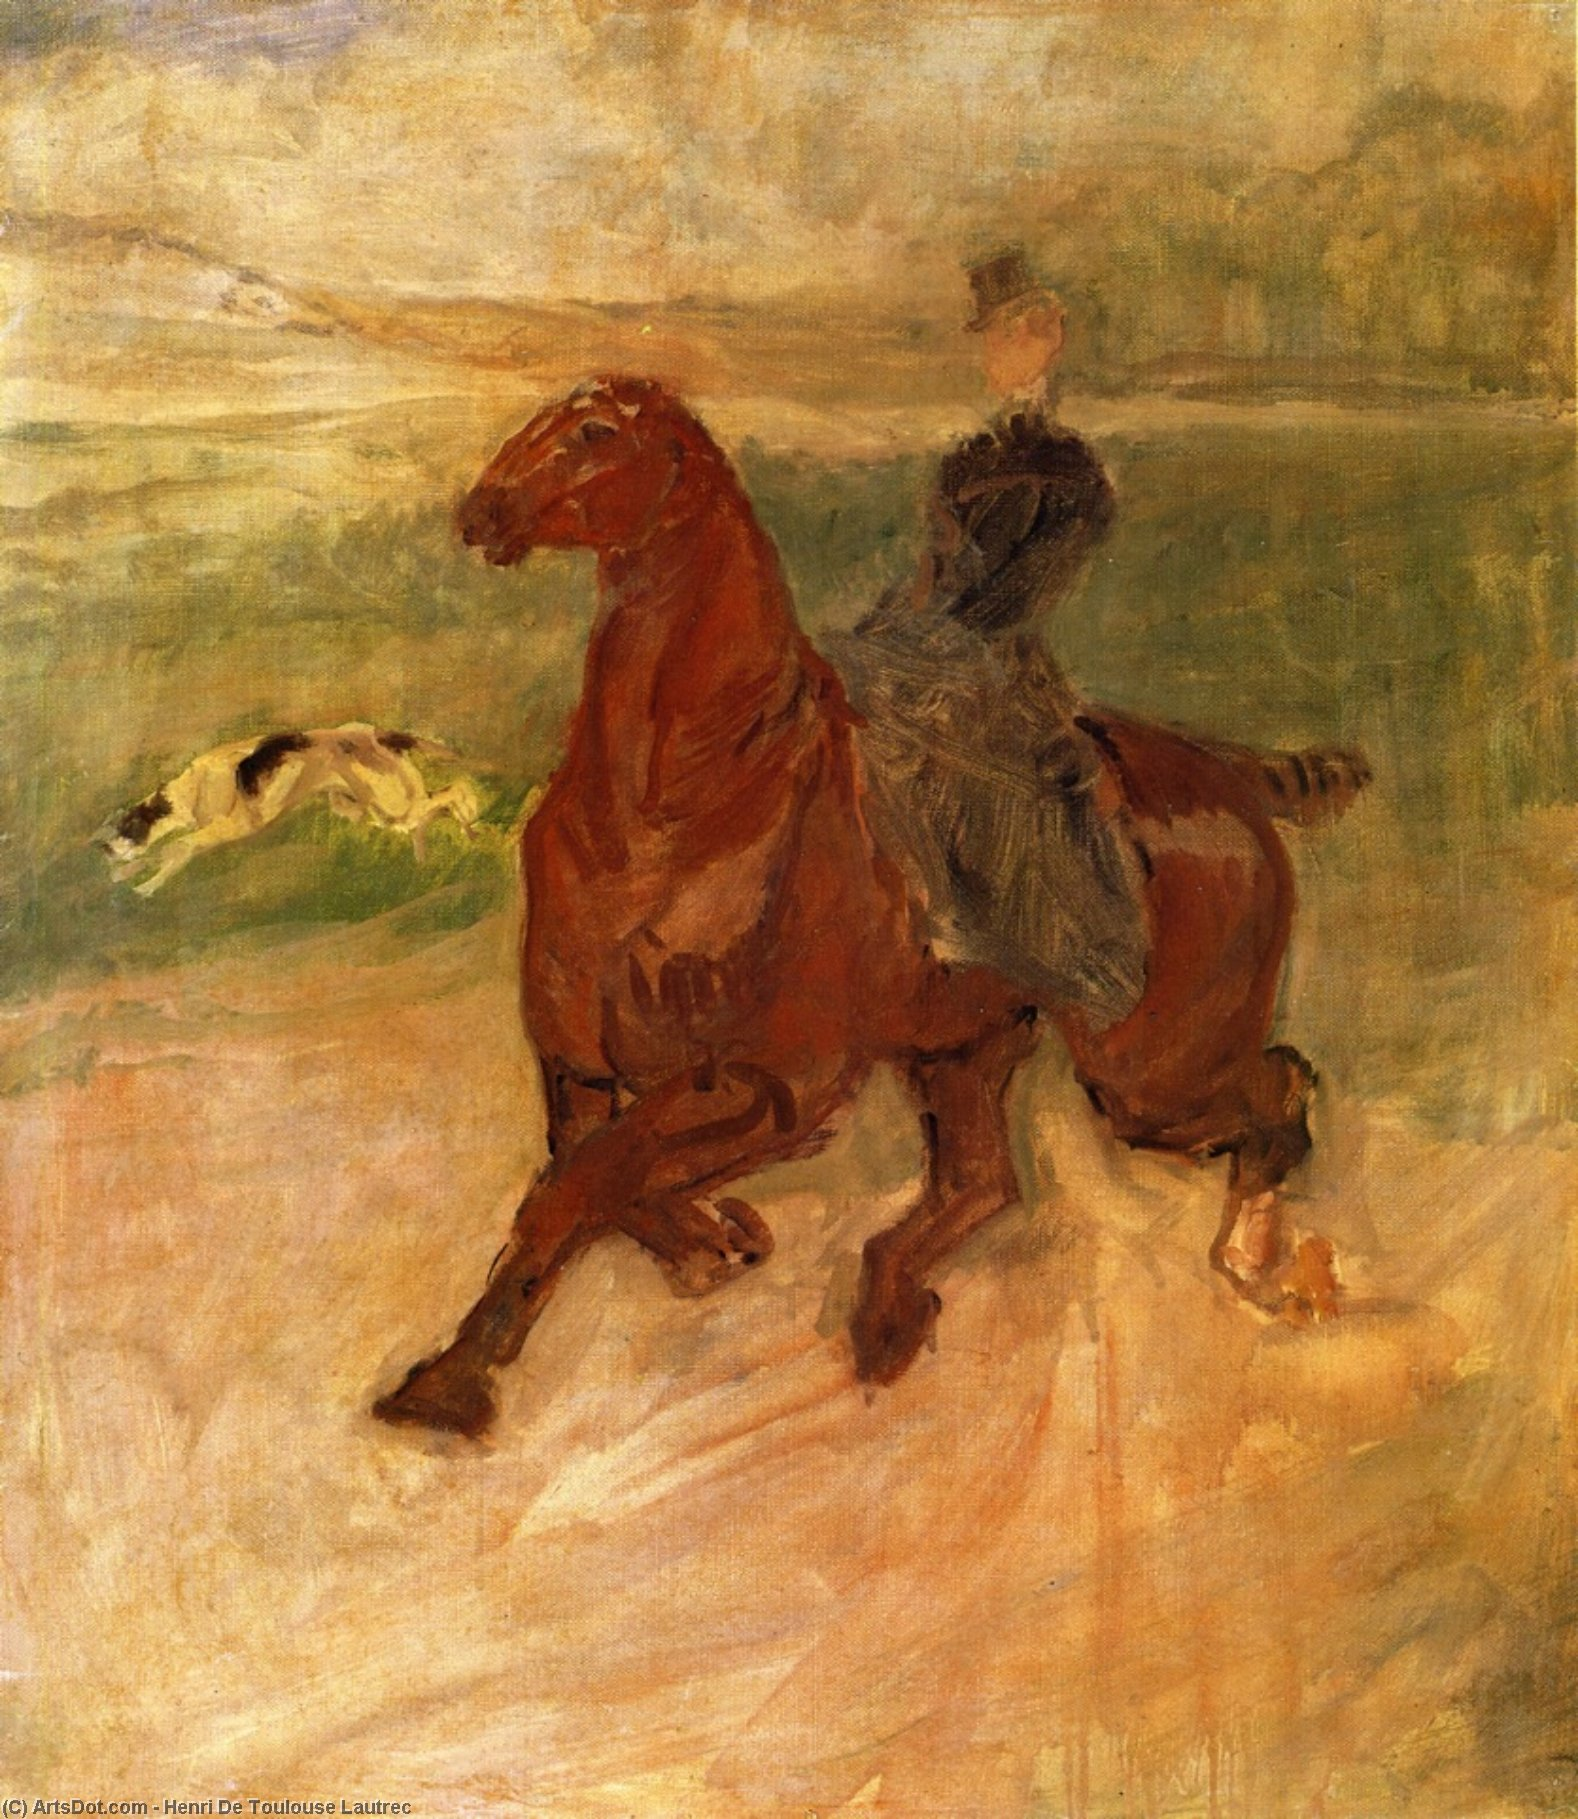 Woman Rider and Dog, Oil On Canvas by Henri De Toulouse Lautrec (1864-1901, France)